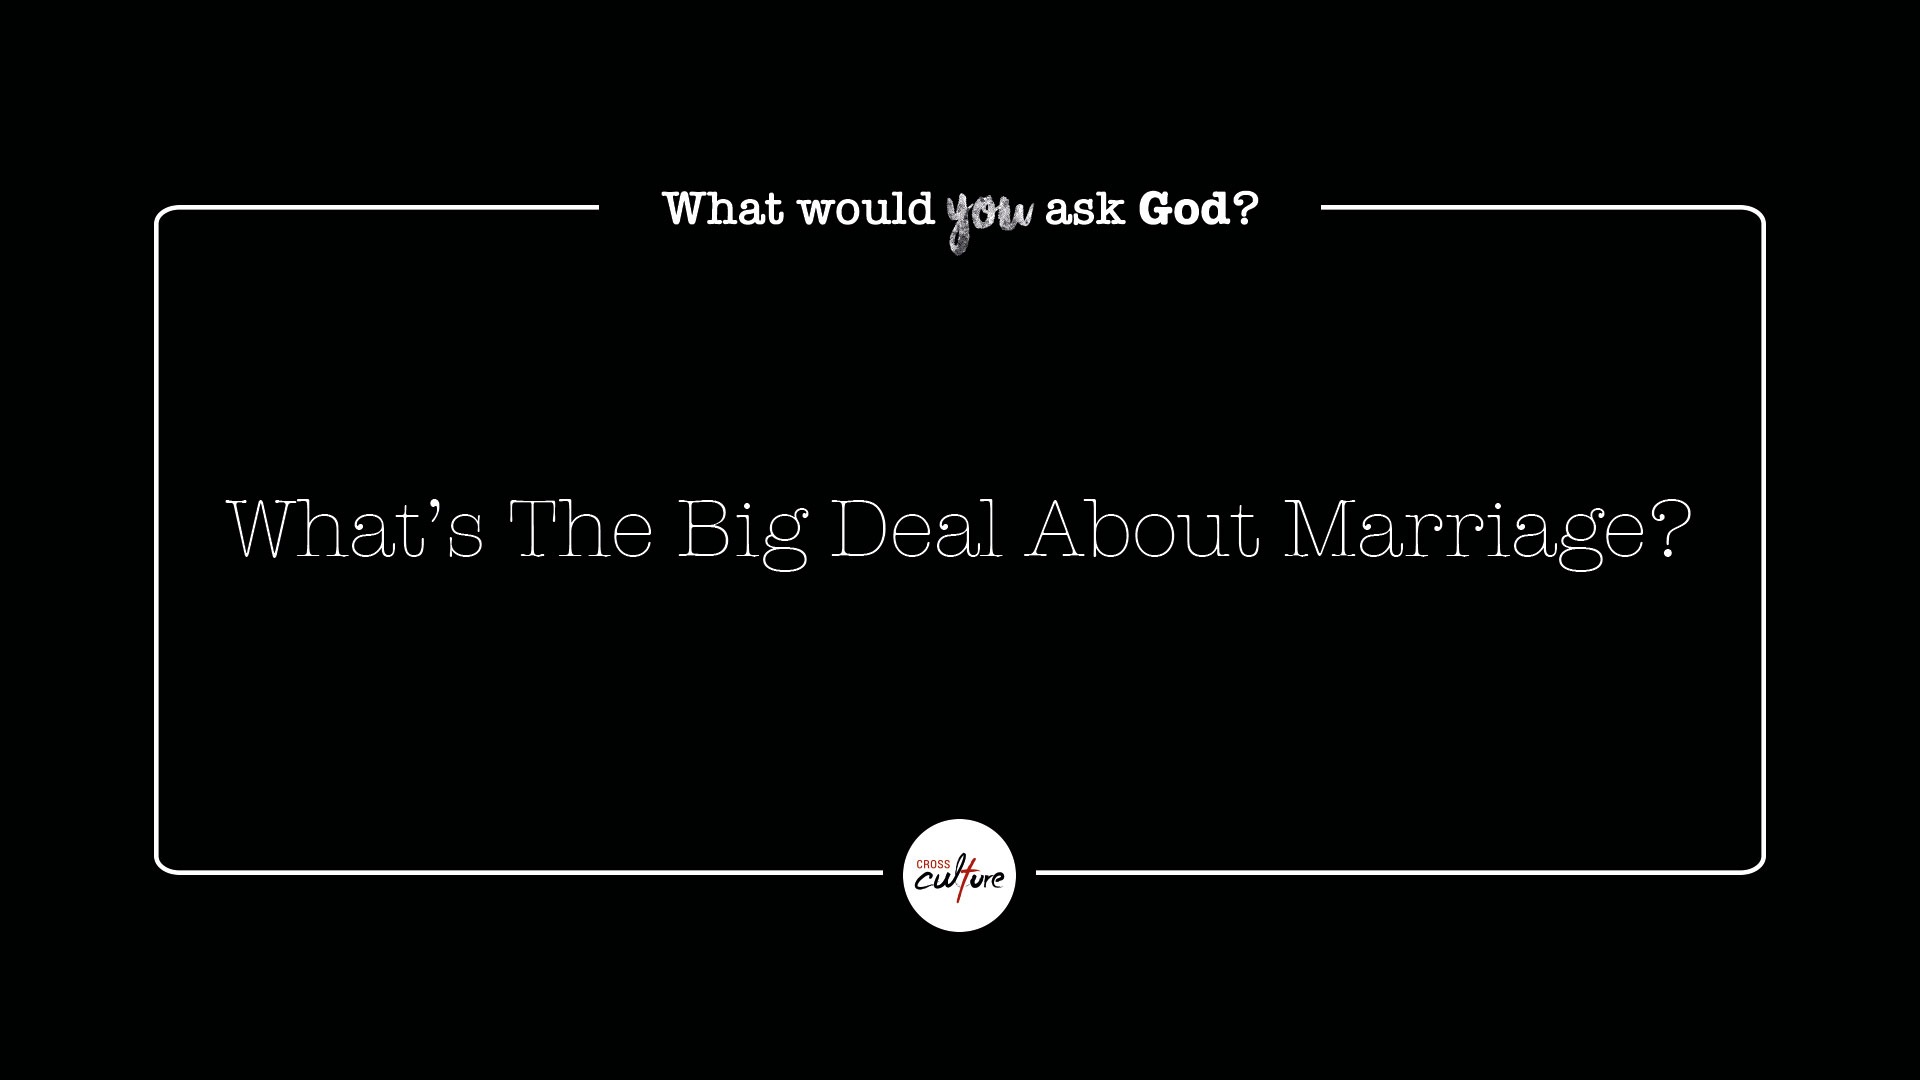 What's The Big Deal About Marriage?